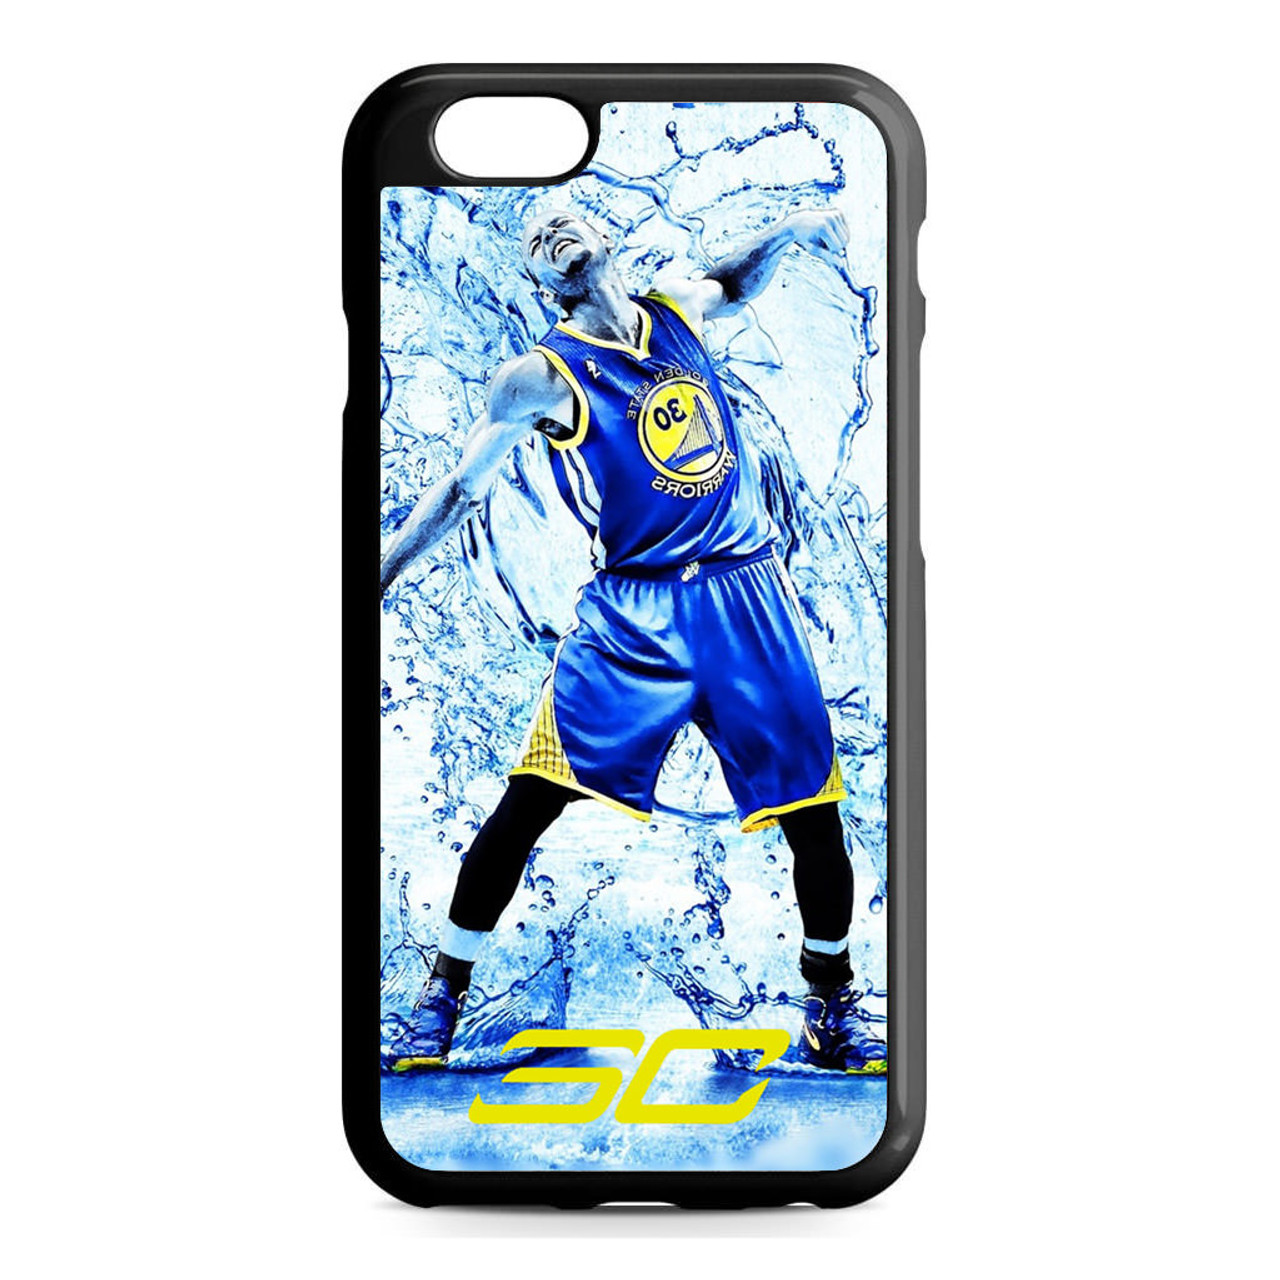 b609cd24779a Stephen Curry Water iPhone 6 6S Case - CASESHUNTER